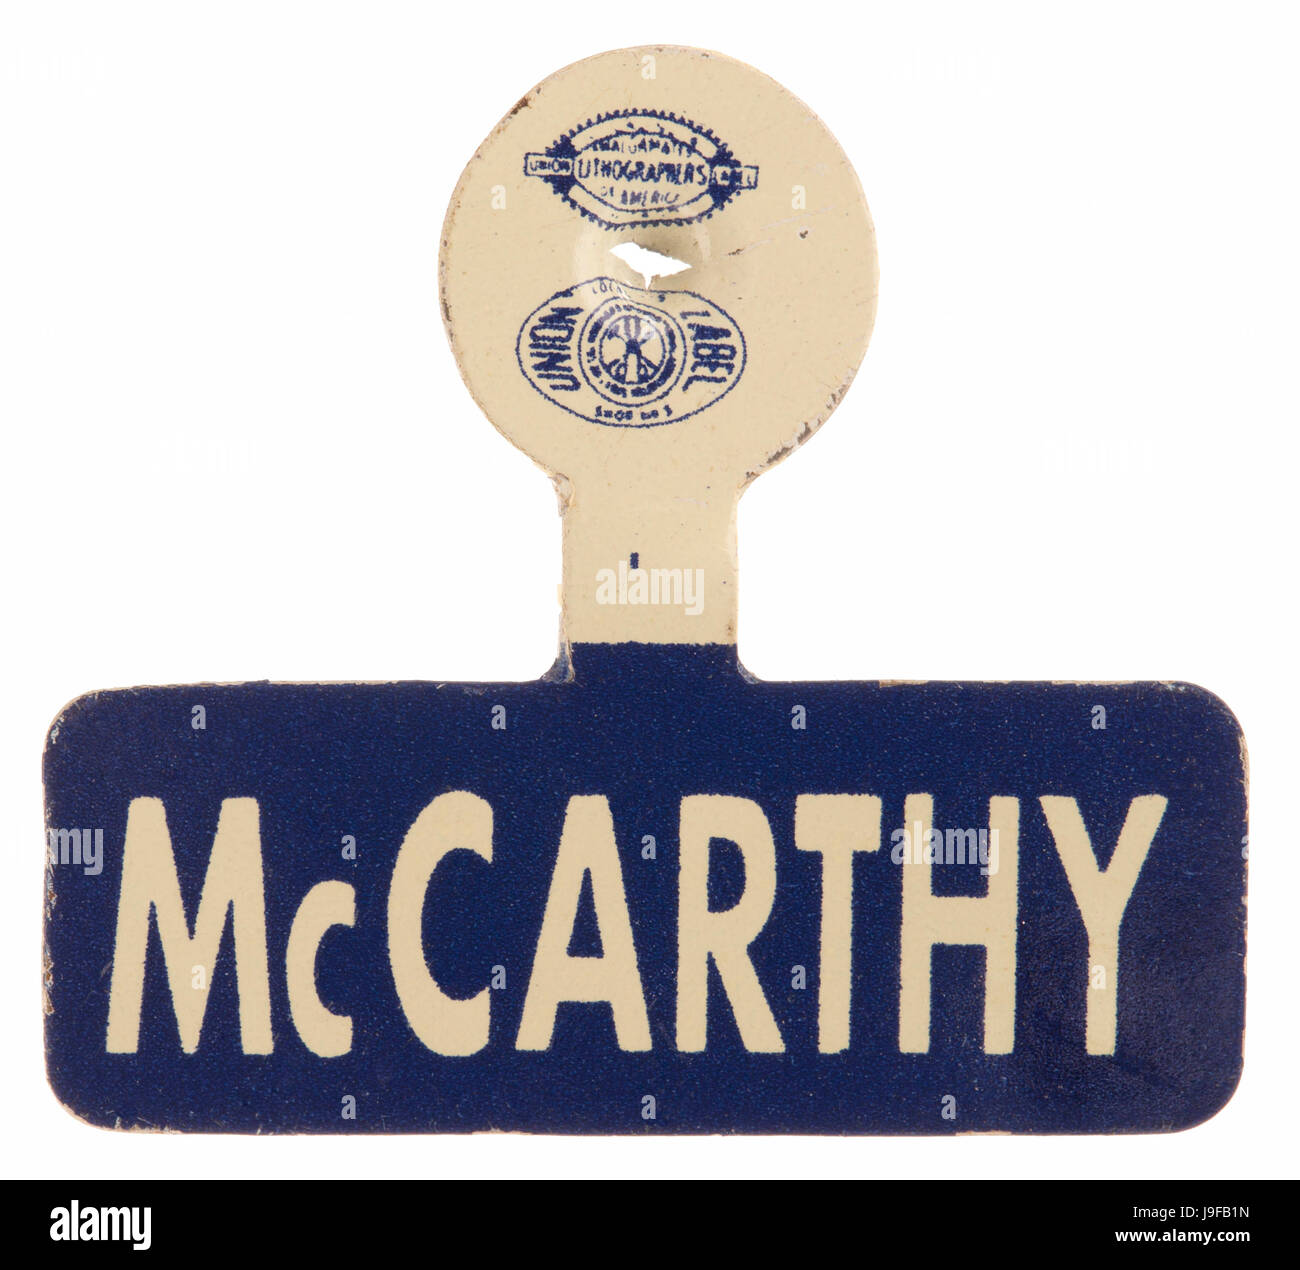 A metal blue and white lapel tab for Minnesota DFL candidate Eugene McCarthy - Stock Image